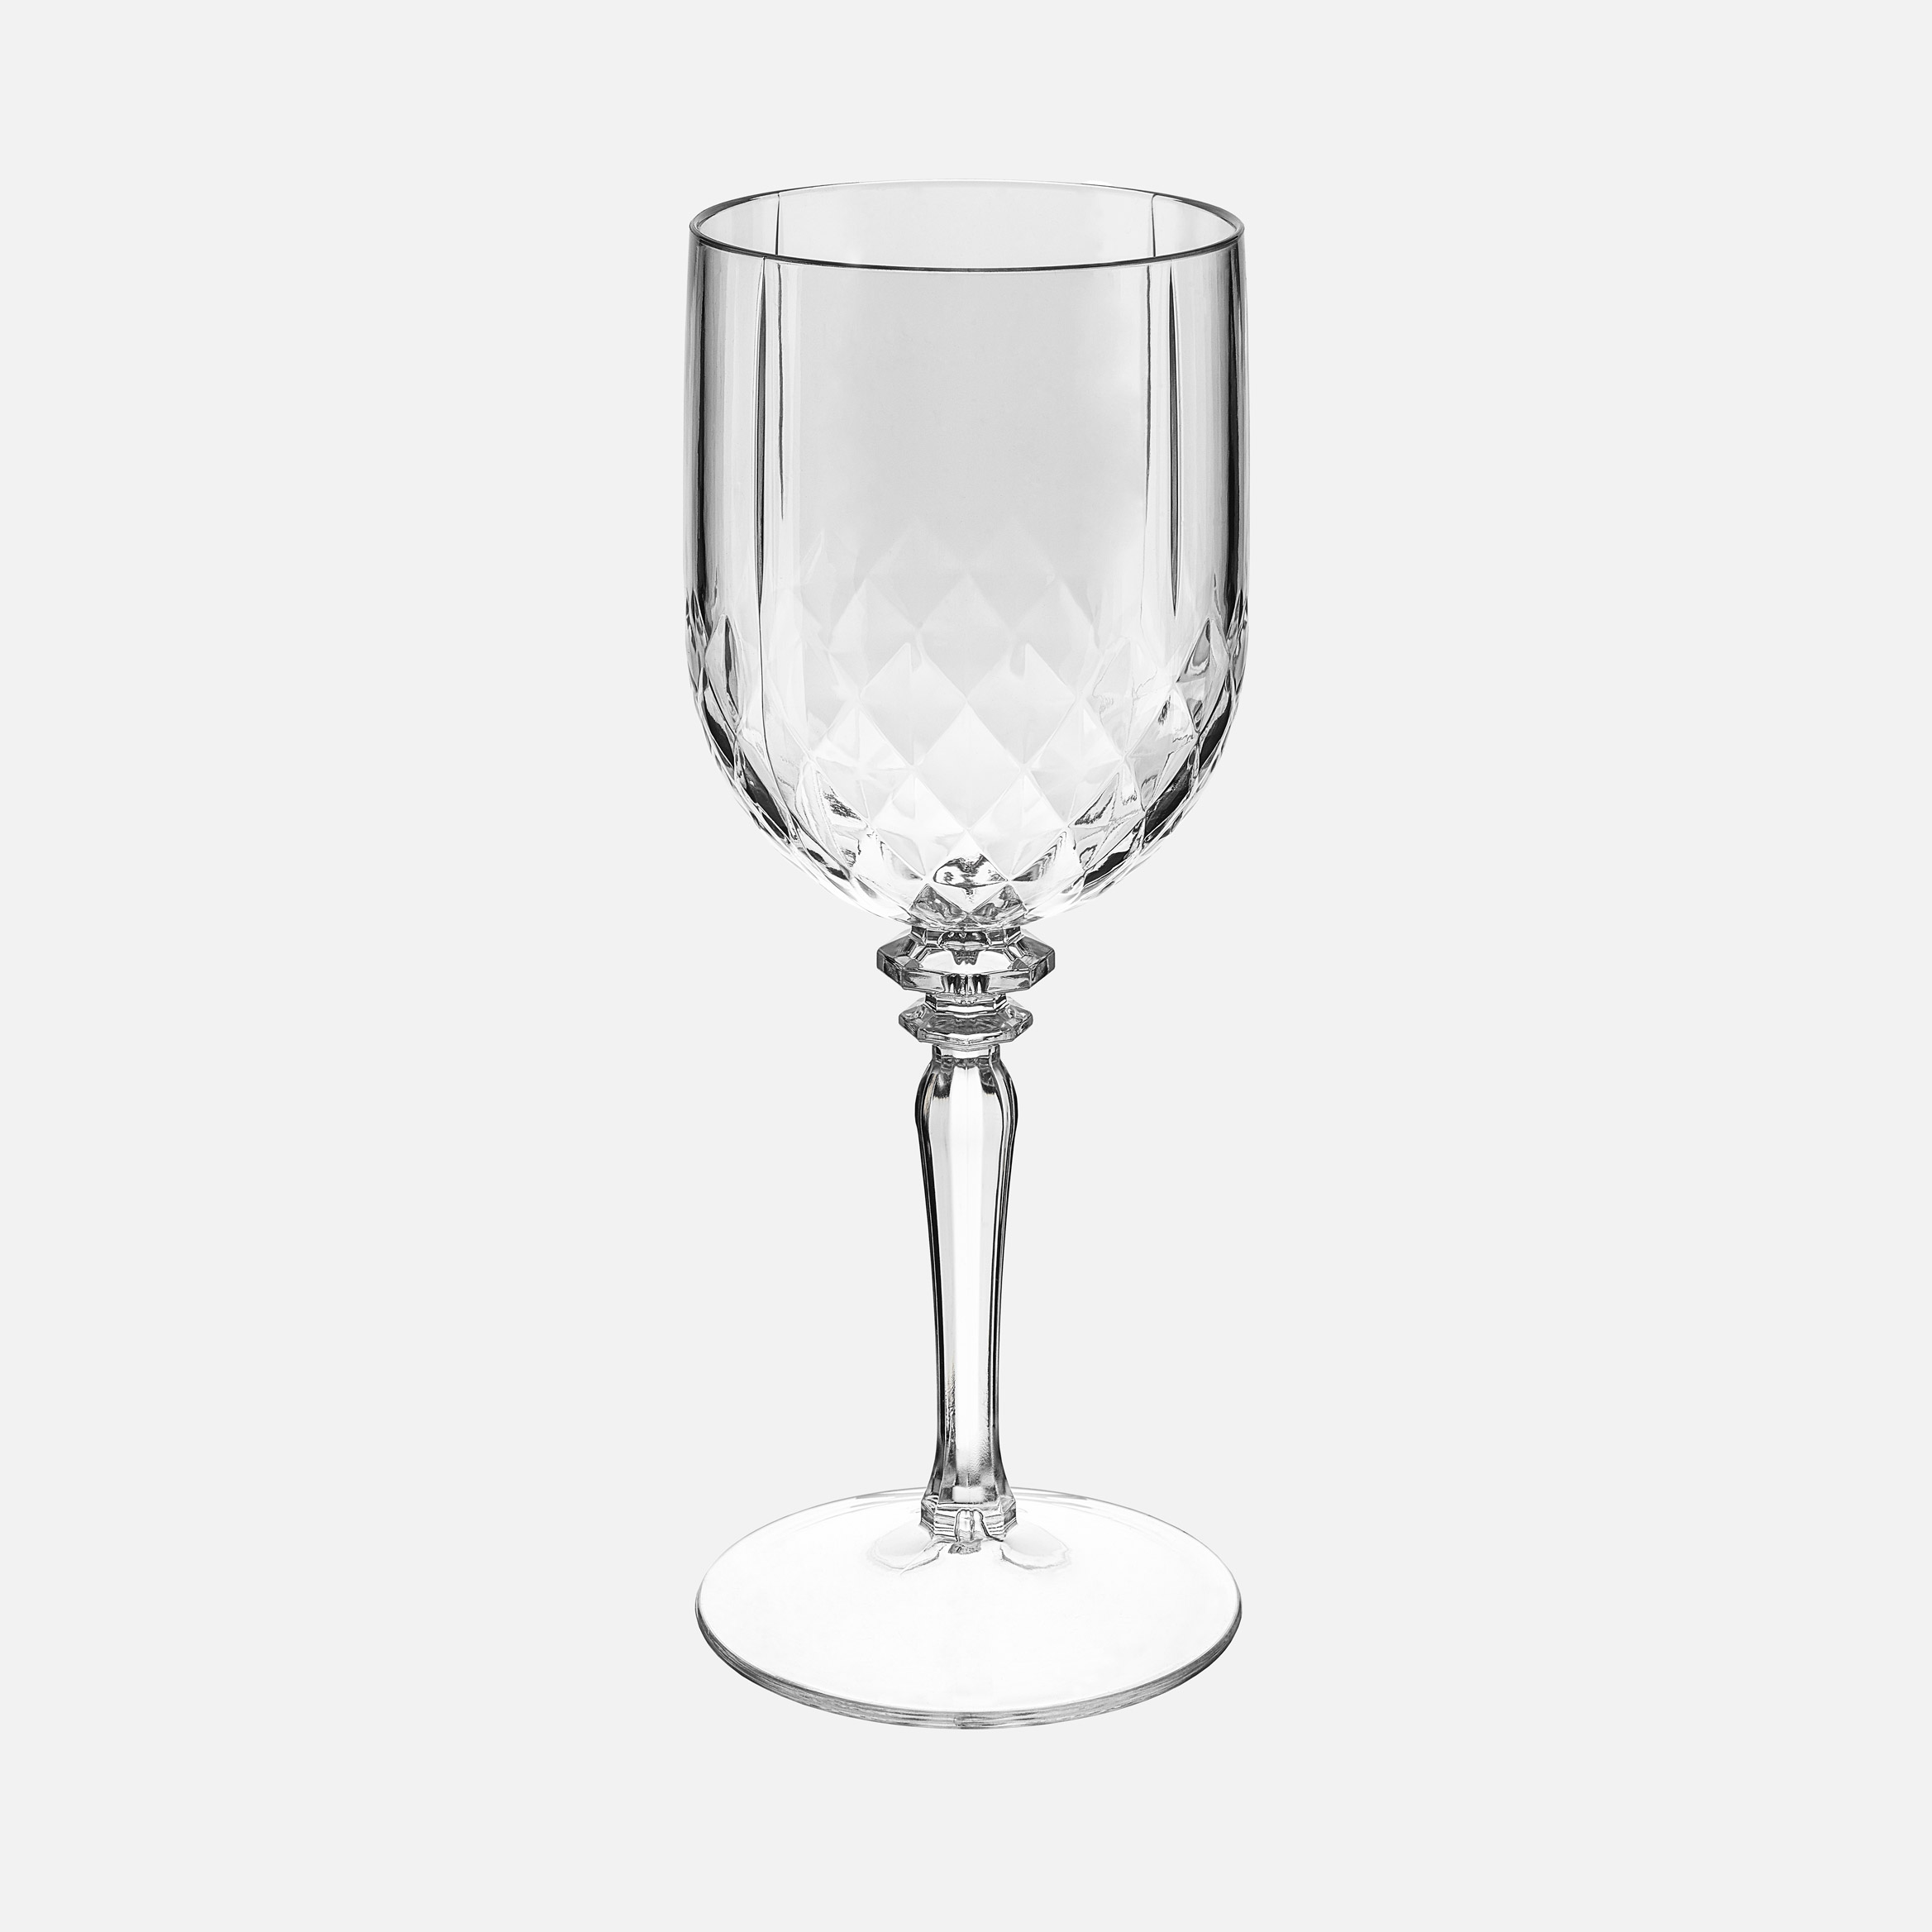 Óbidos Wine Cup 350ml